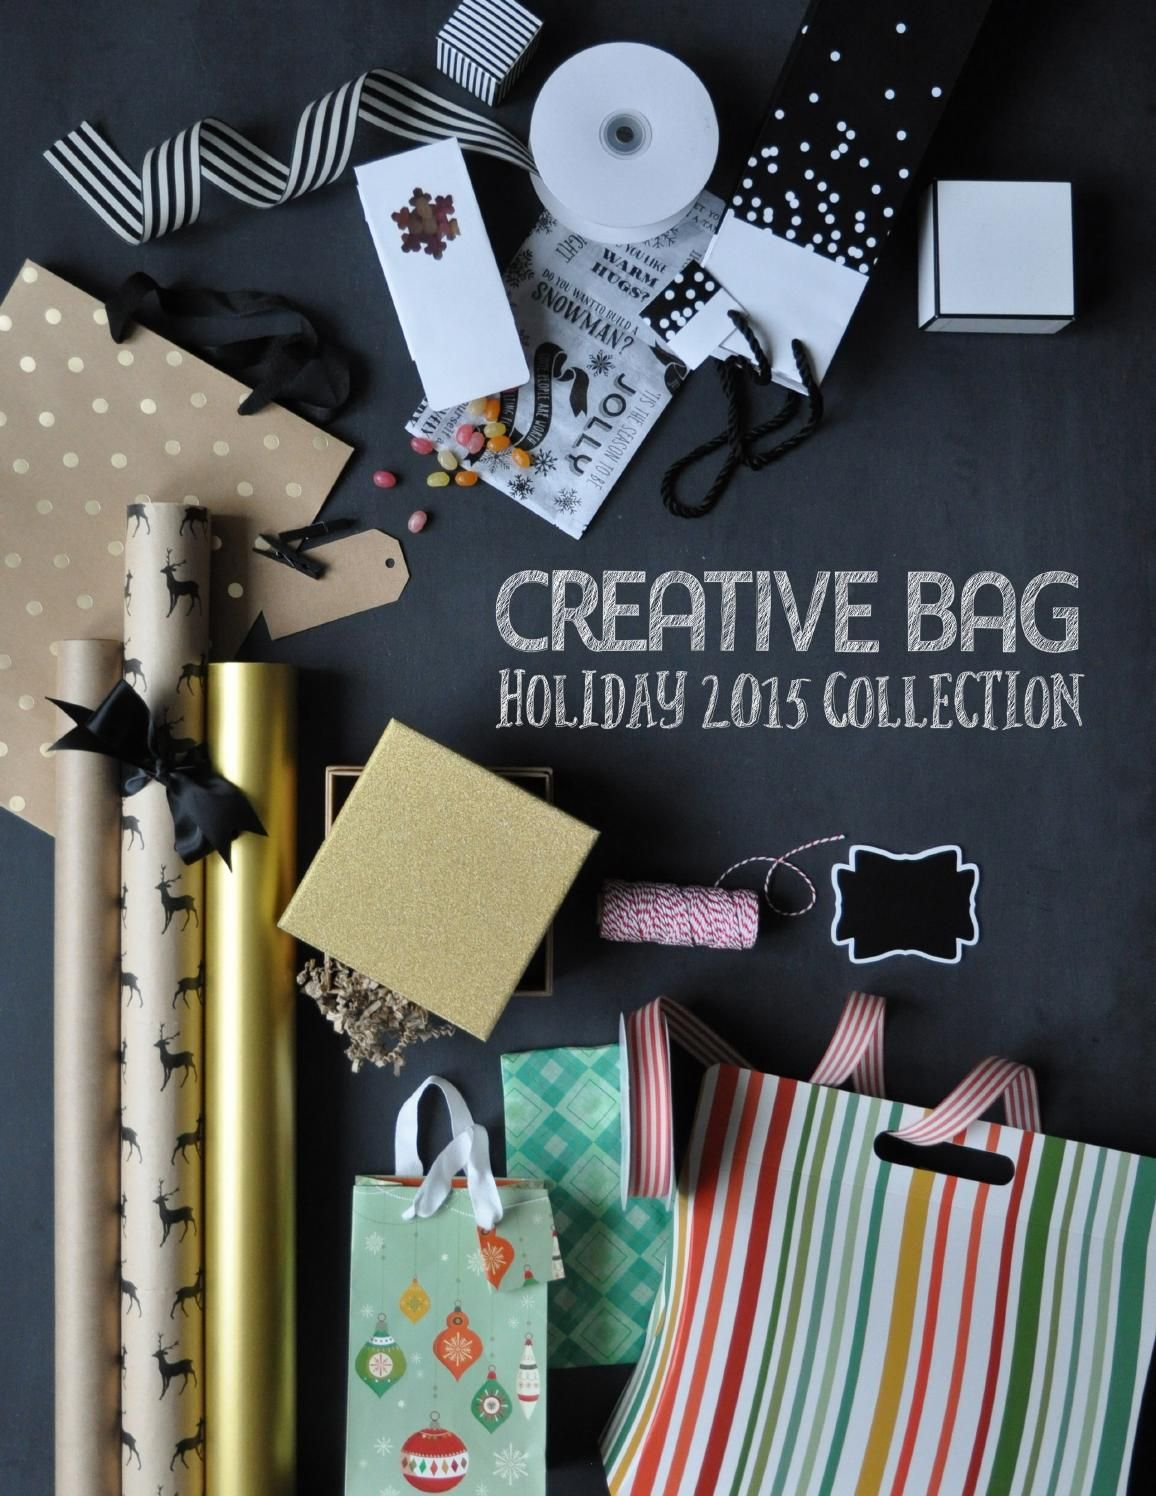 Creative Bag Holiday 2015 Collection  Creative Bag's exclusive holiday collections for 2015.